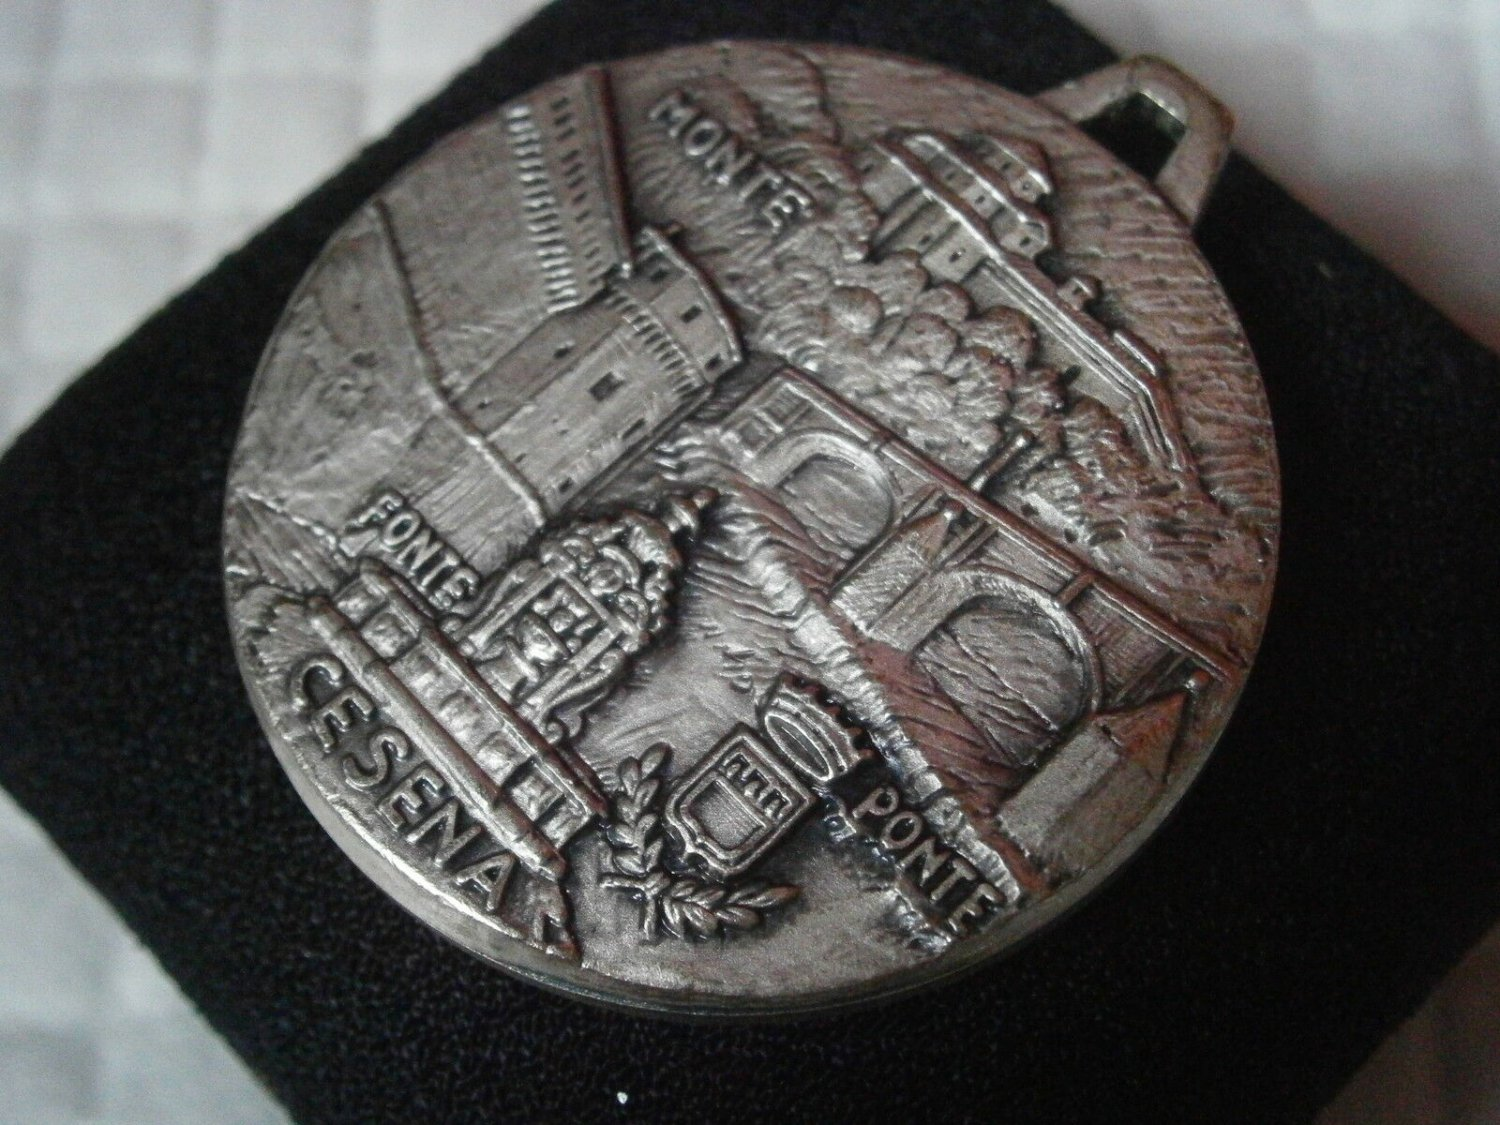 ORIGINAL MEDAL of the city of CESENA Italy 1960s in metal